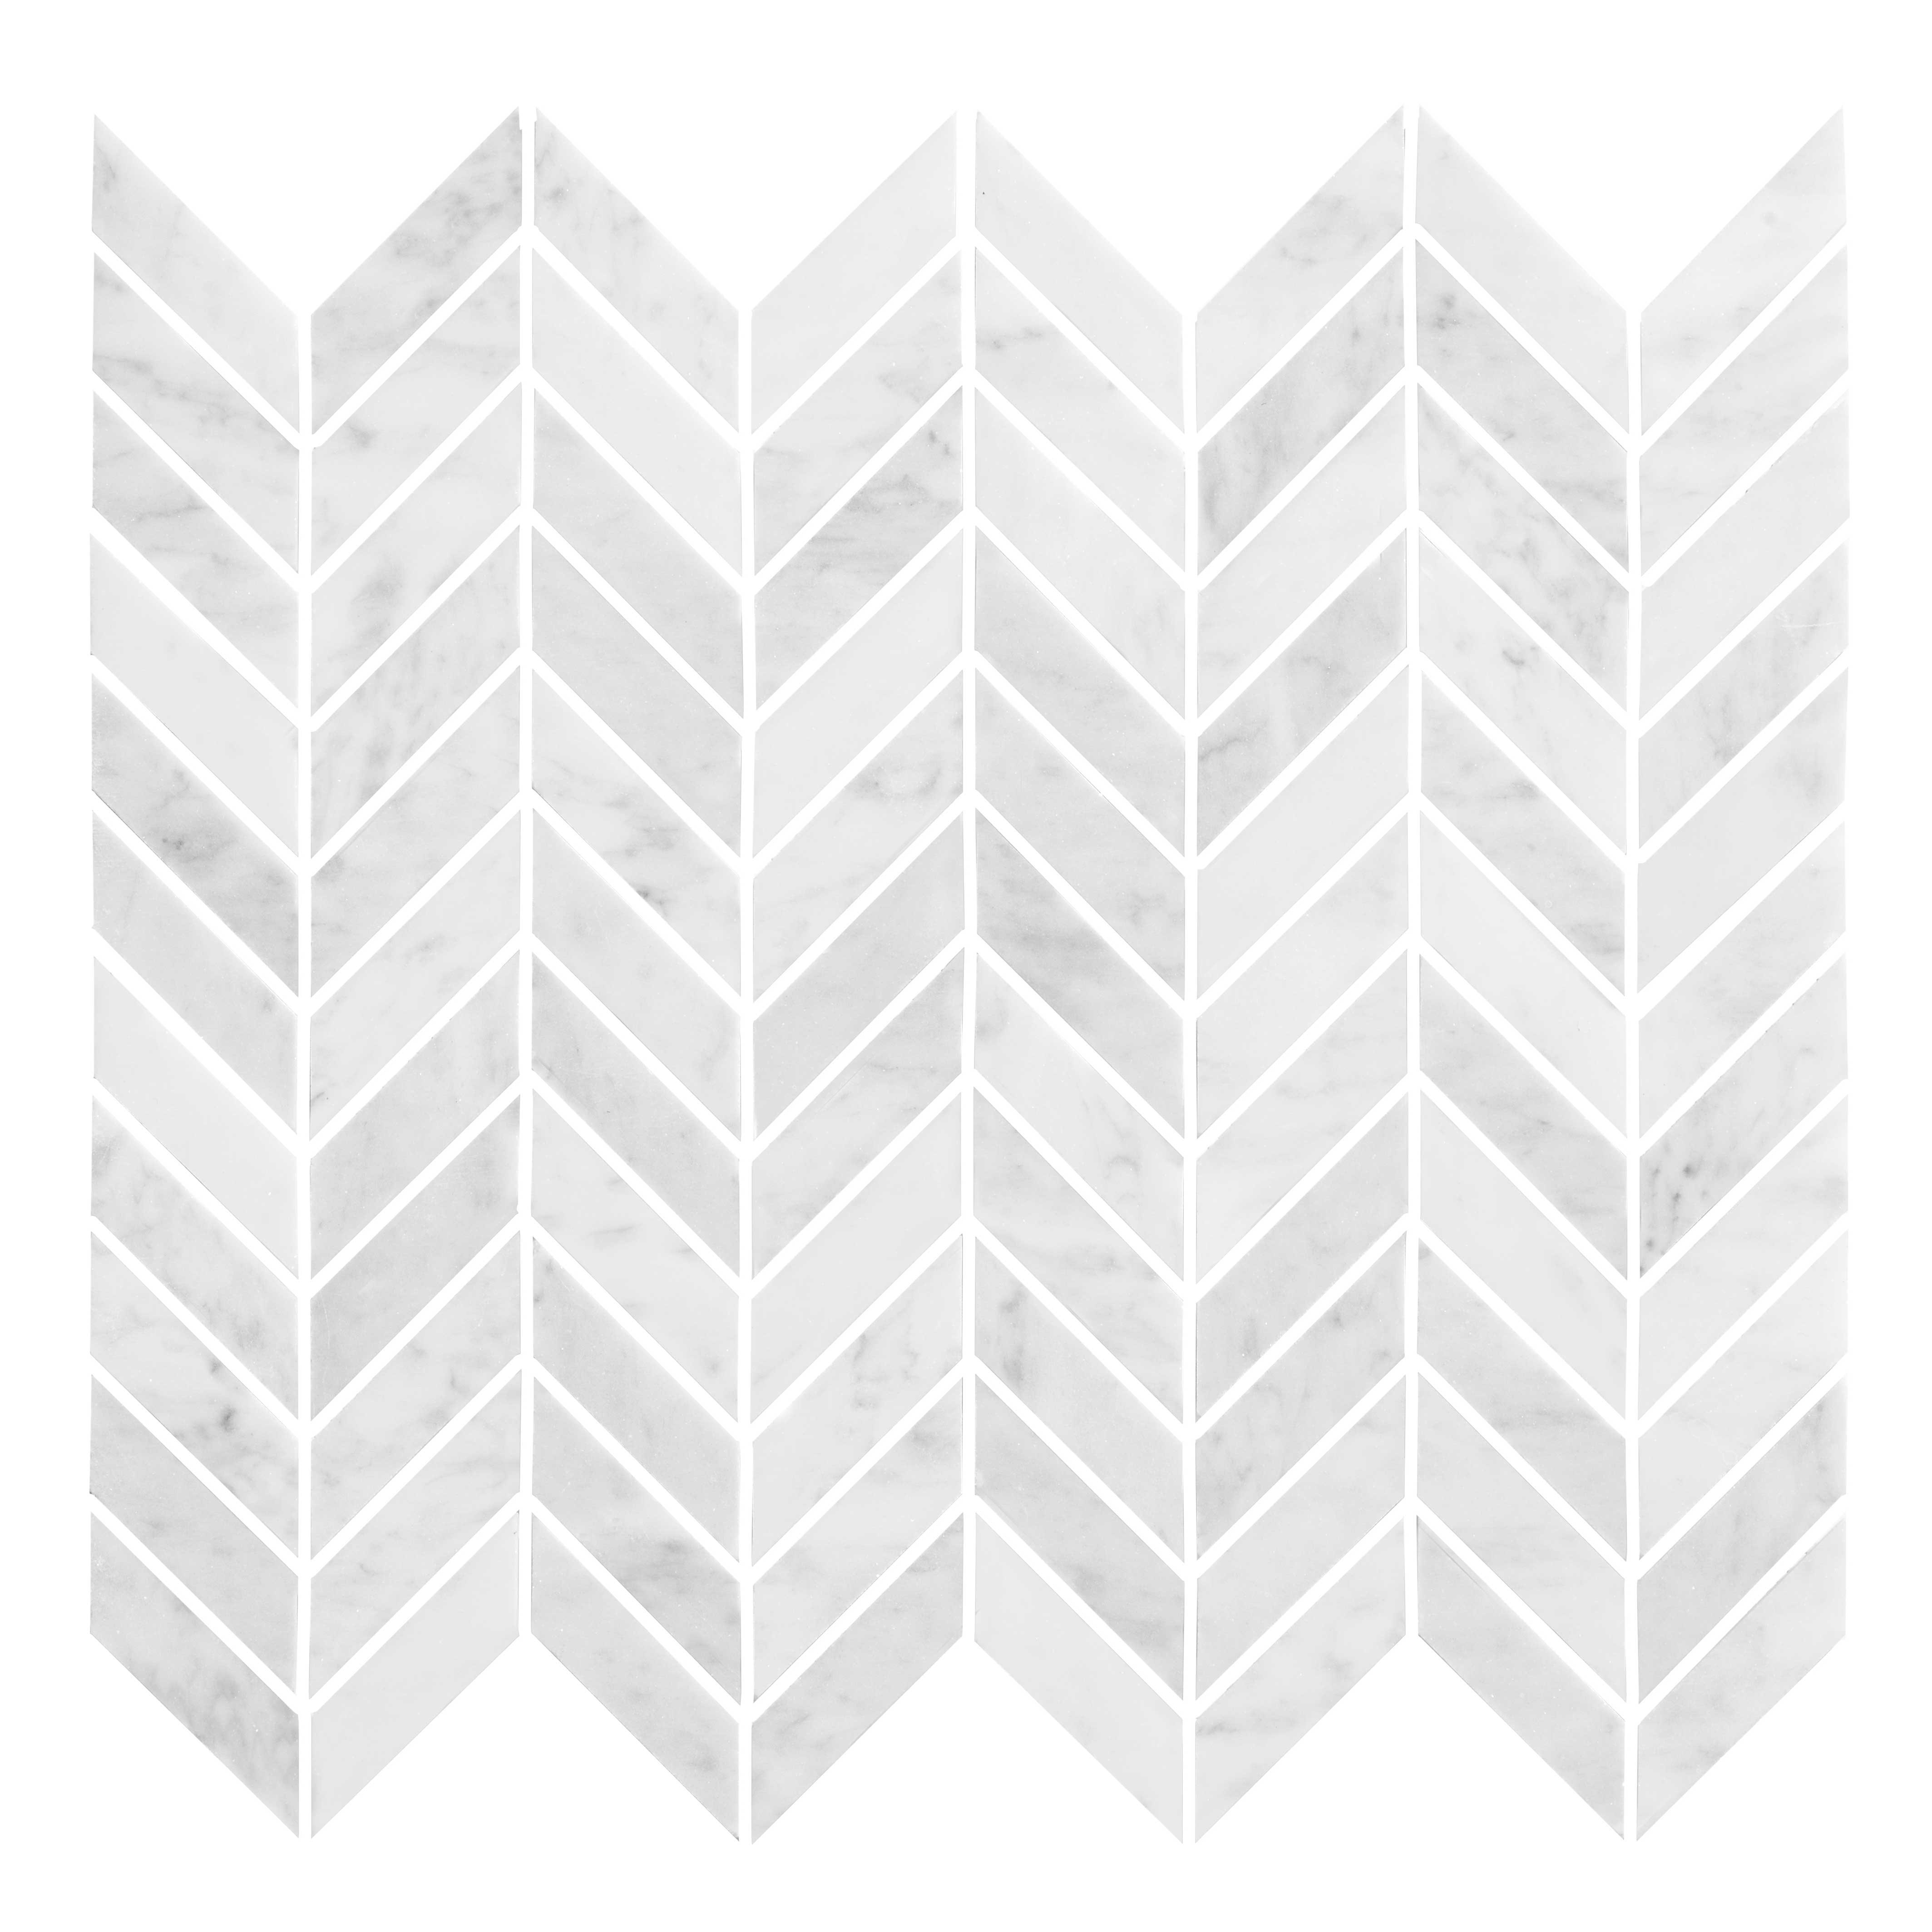 Bricmate Marmor Bianco Carrara U Chevron Polished